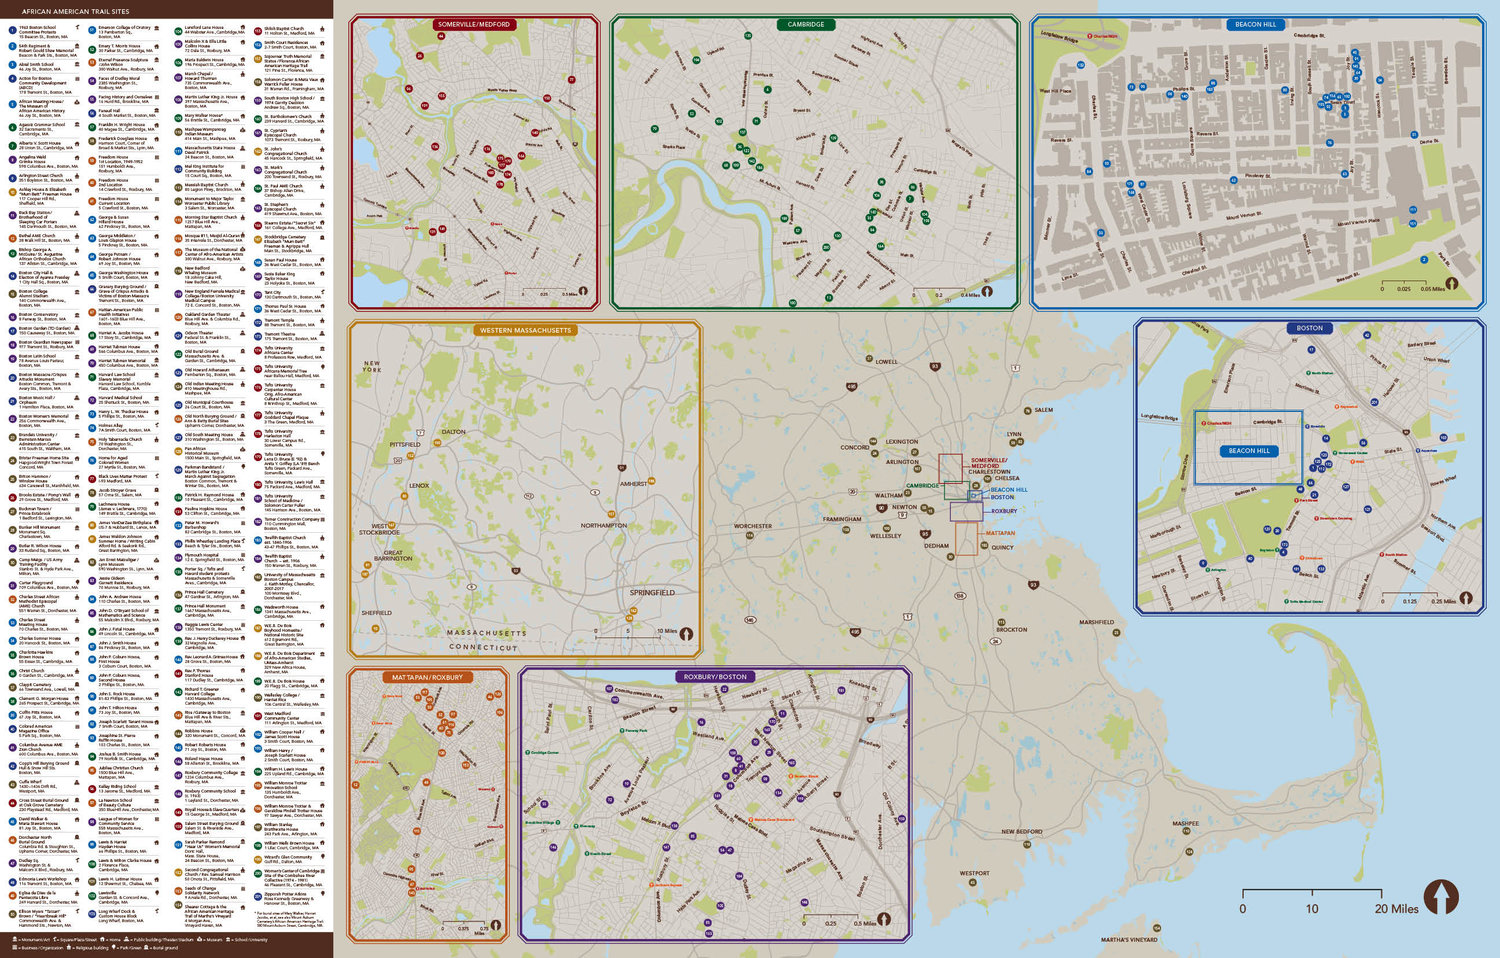 Tufts Hi Res African American Trail Project Map.jpg